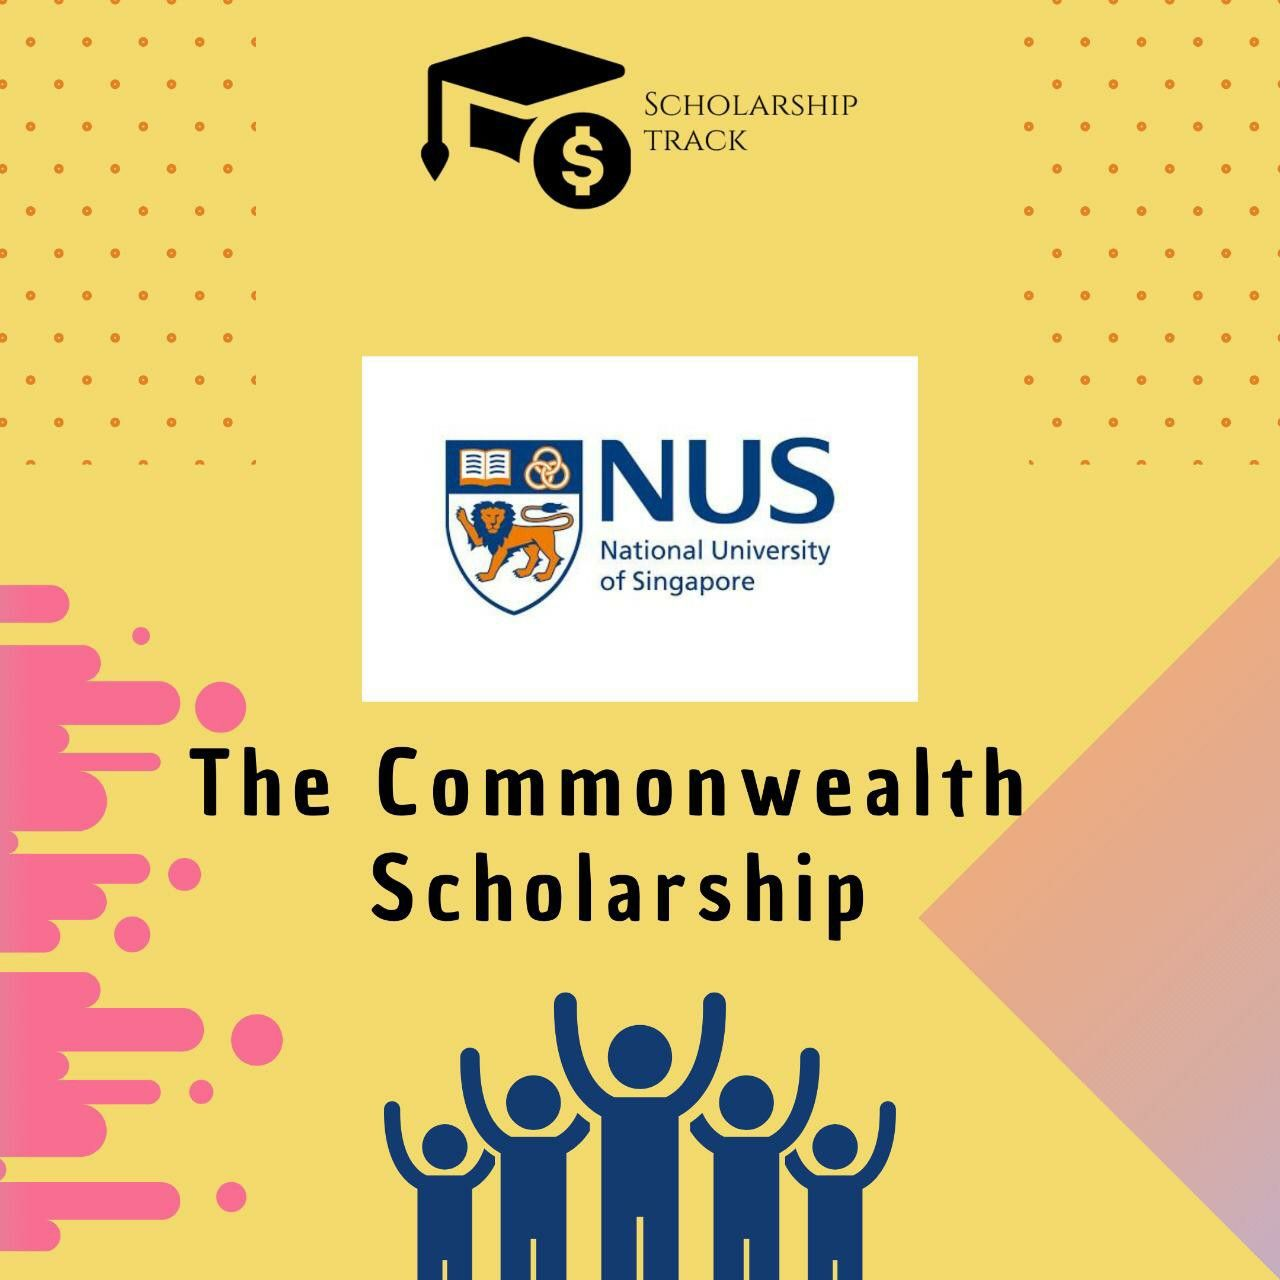 Commonwealth Scholarship In 2020 Scholarships National University Of Singapore Tuition Fees